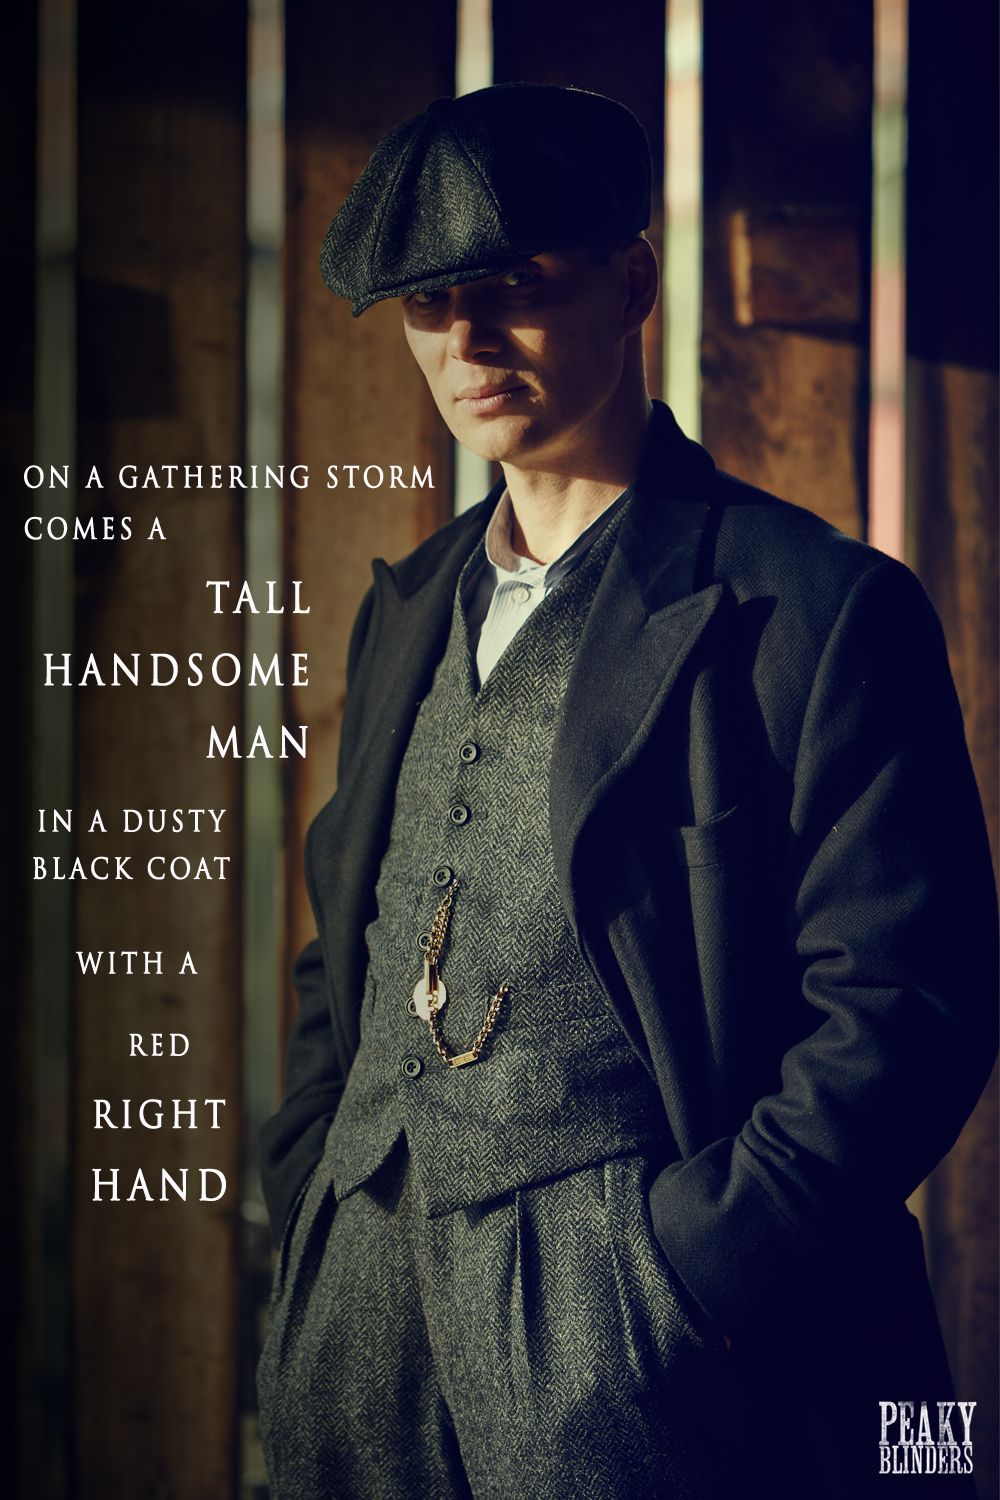 Nick Caves theme song for Peaky Blinders. Catch up on the ...